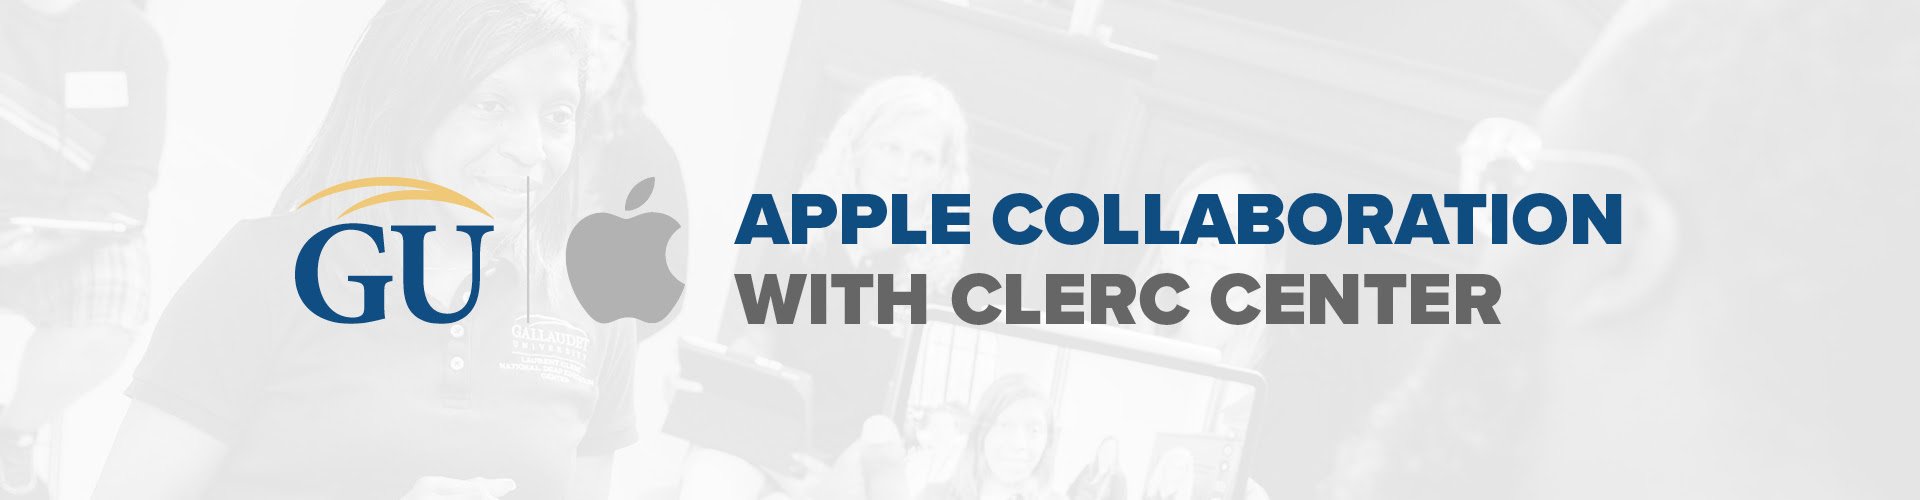 "An image with Gallaudet's and Apple's logo is visible with the phrase ""Apple Collaboration with Clerc Center"""